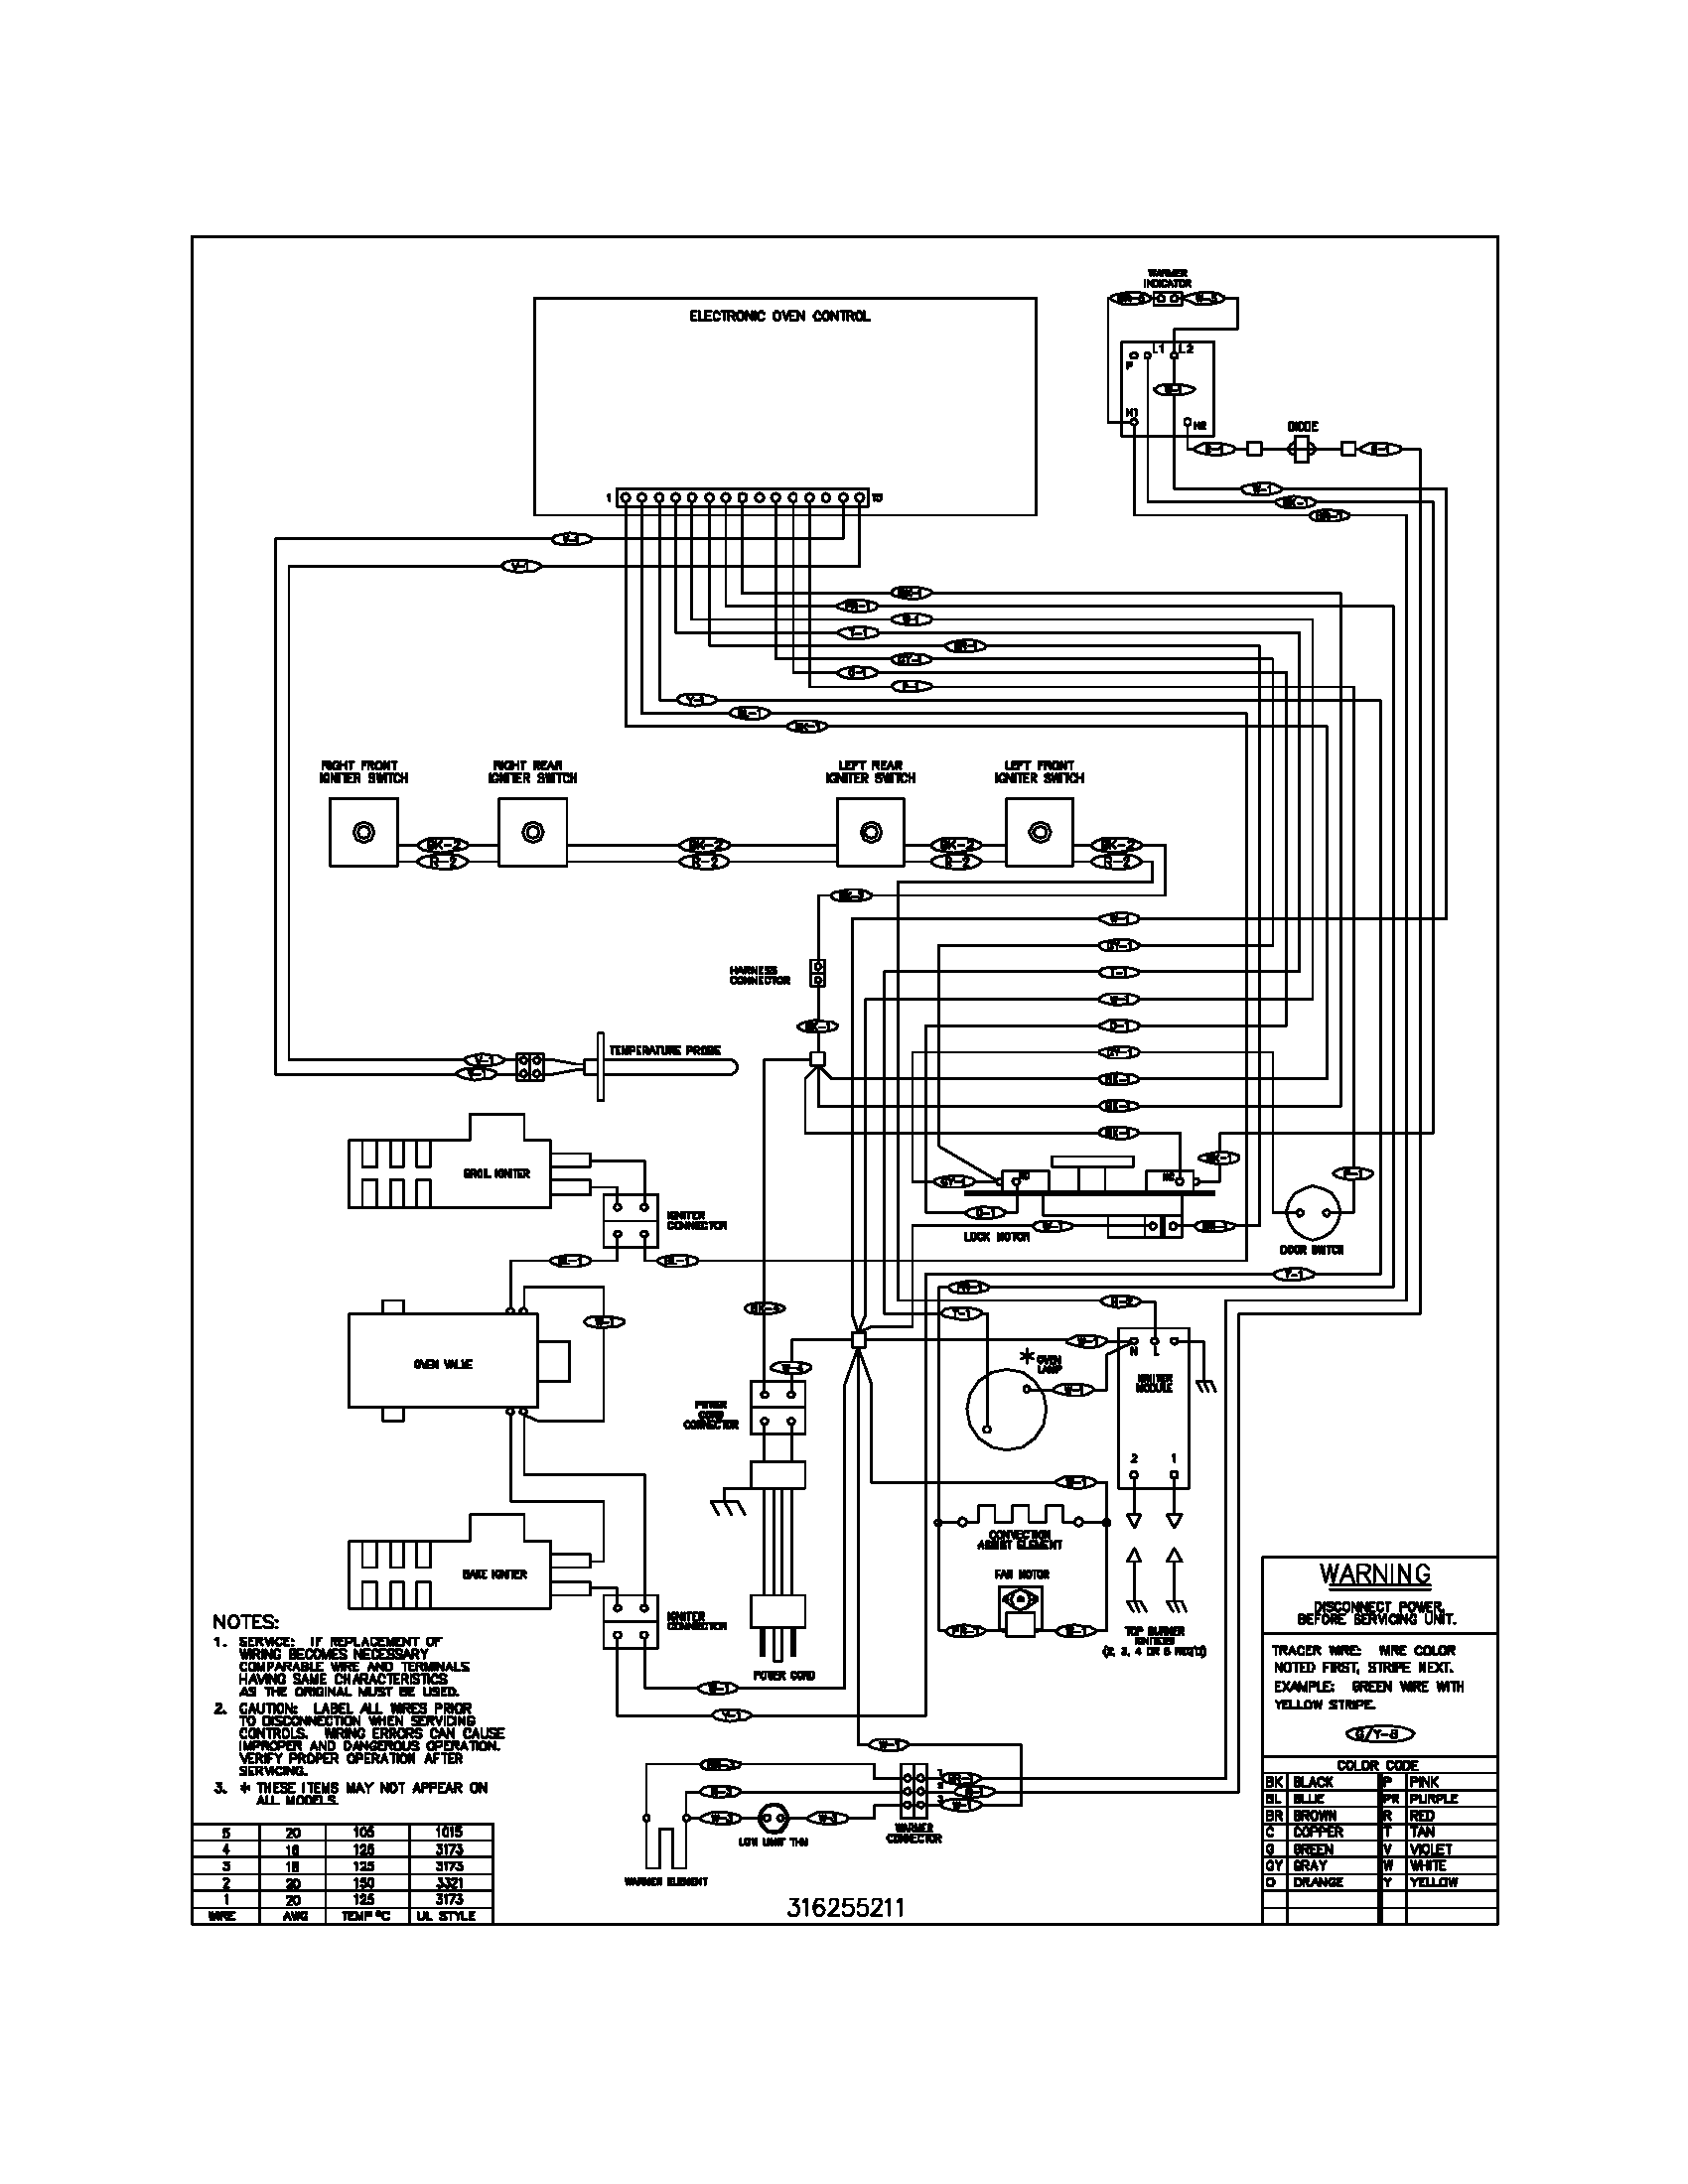 wiring diagram parts frigidaire plgf389ccc gas range timer stove clocks and appliance  at panicattacktreatment.co